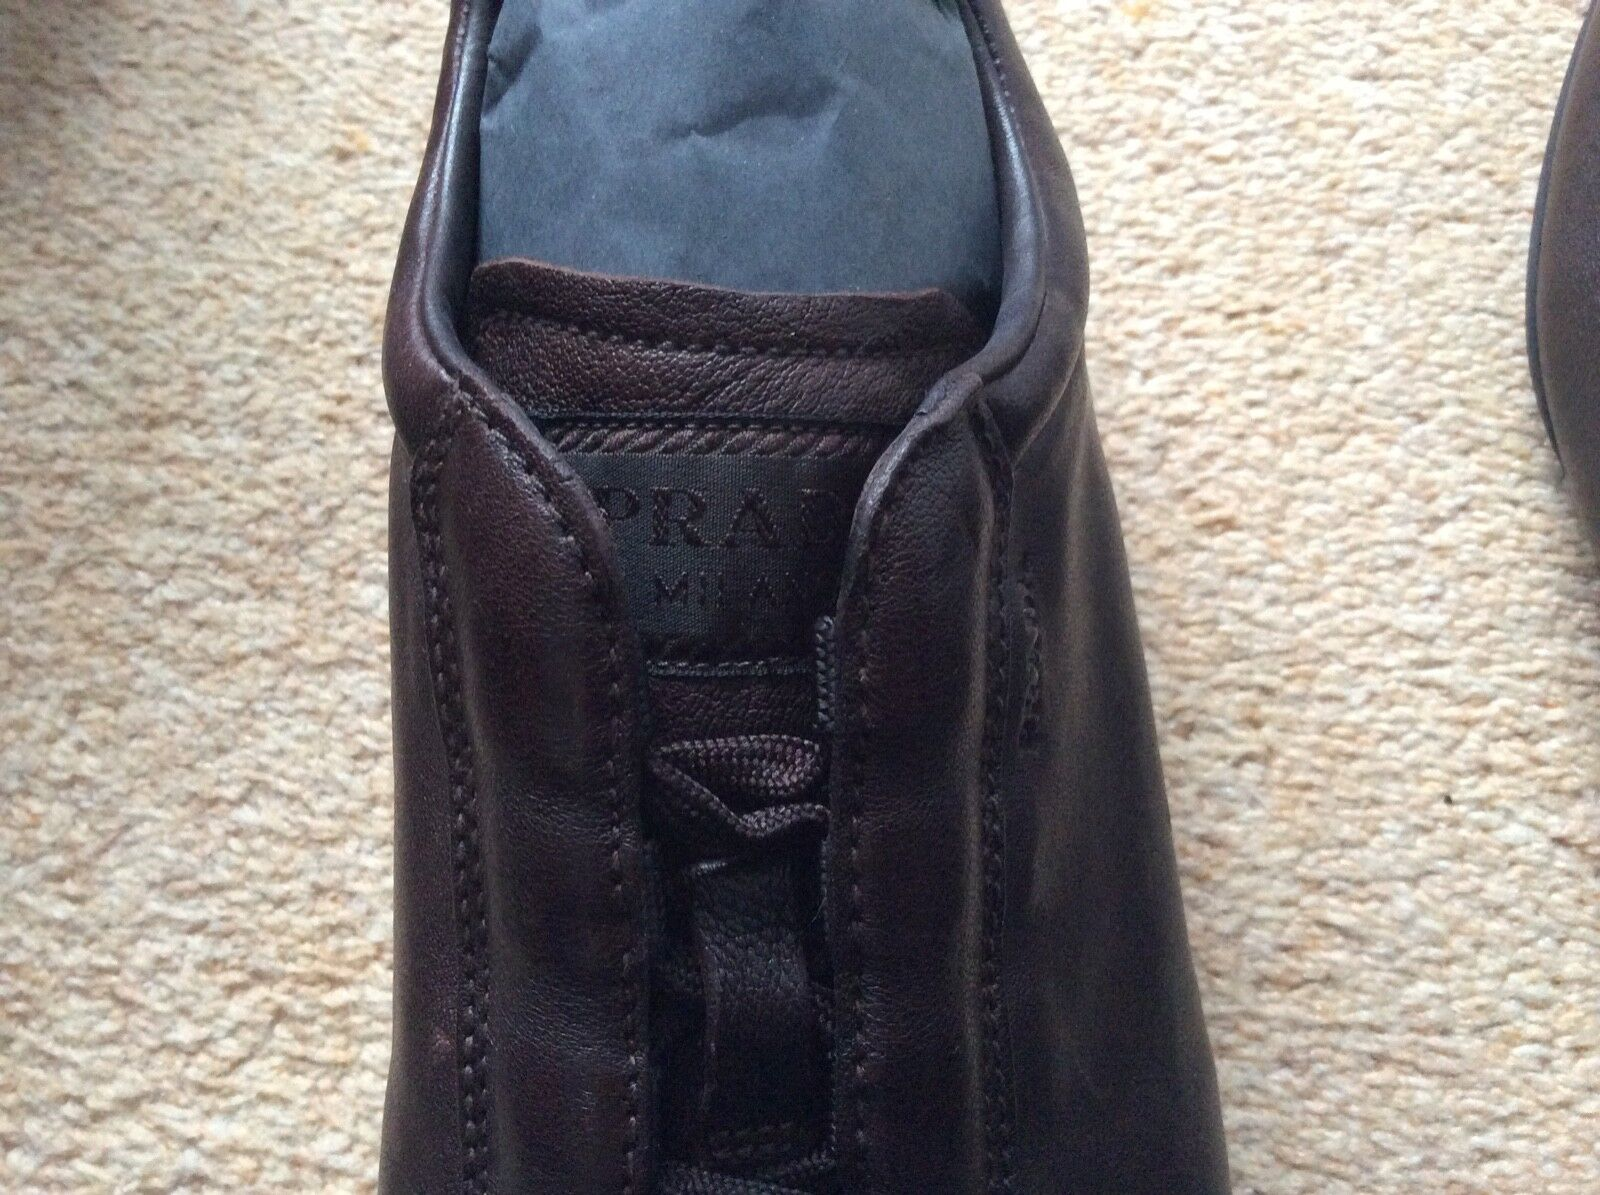 Prada Nappa Aviator Sneakers shoes brown (caffe) size size size 6 2f02a9